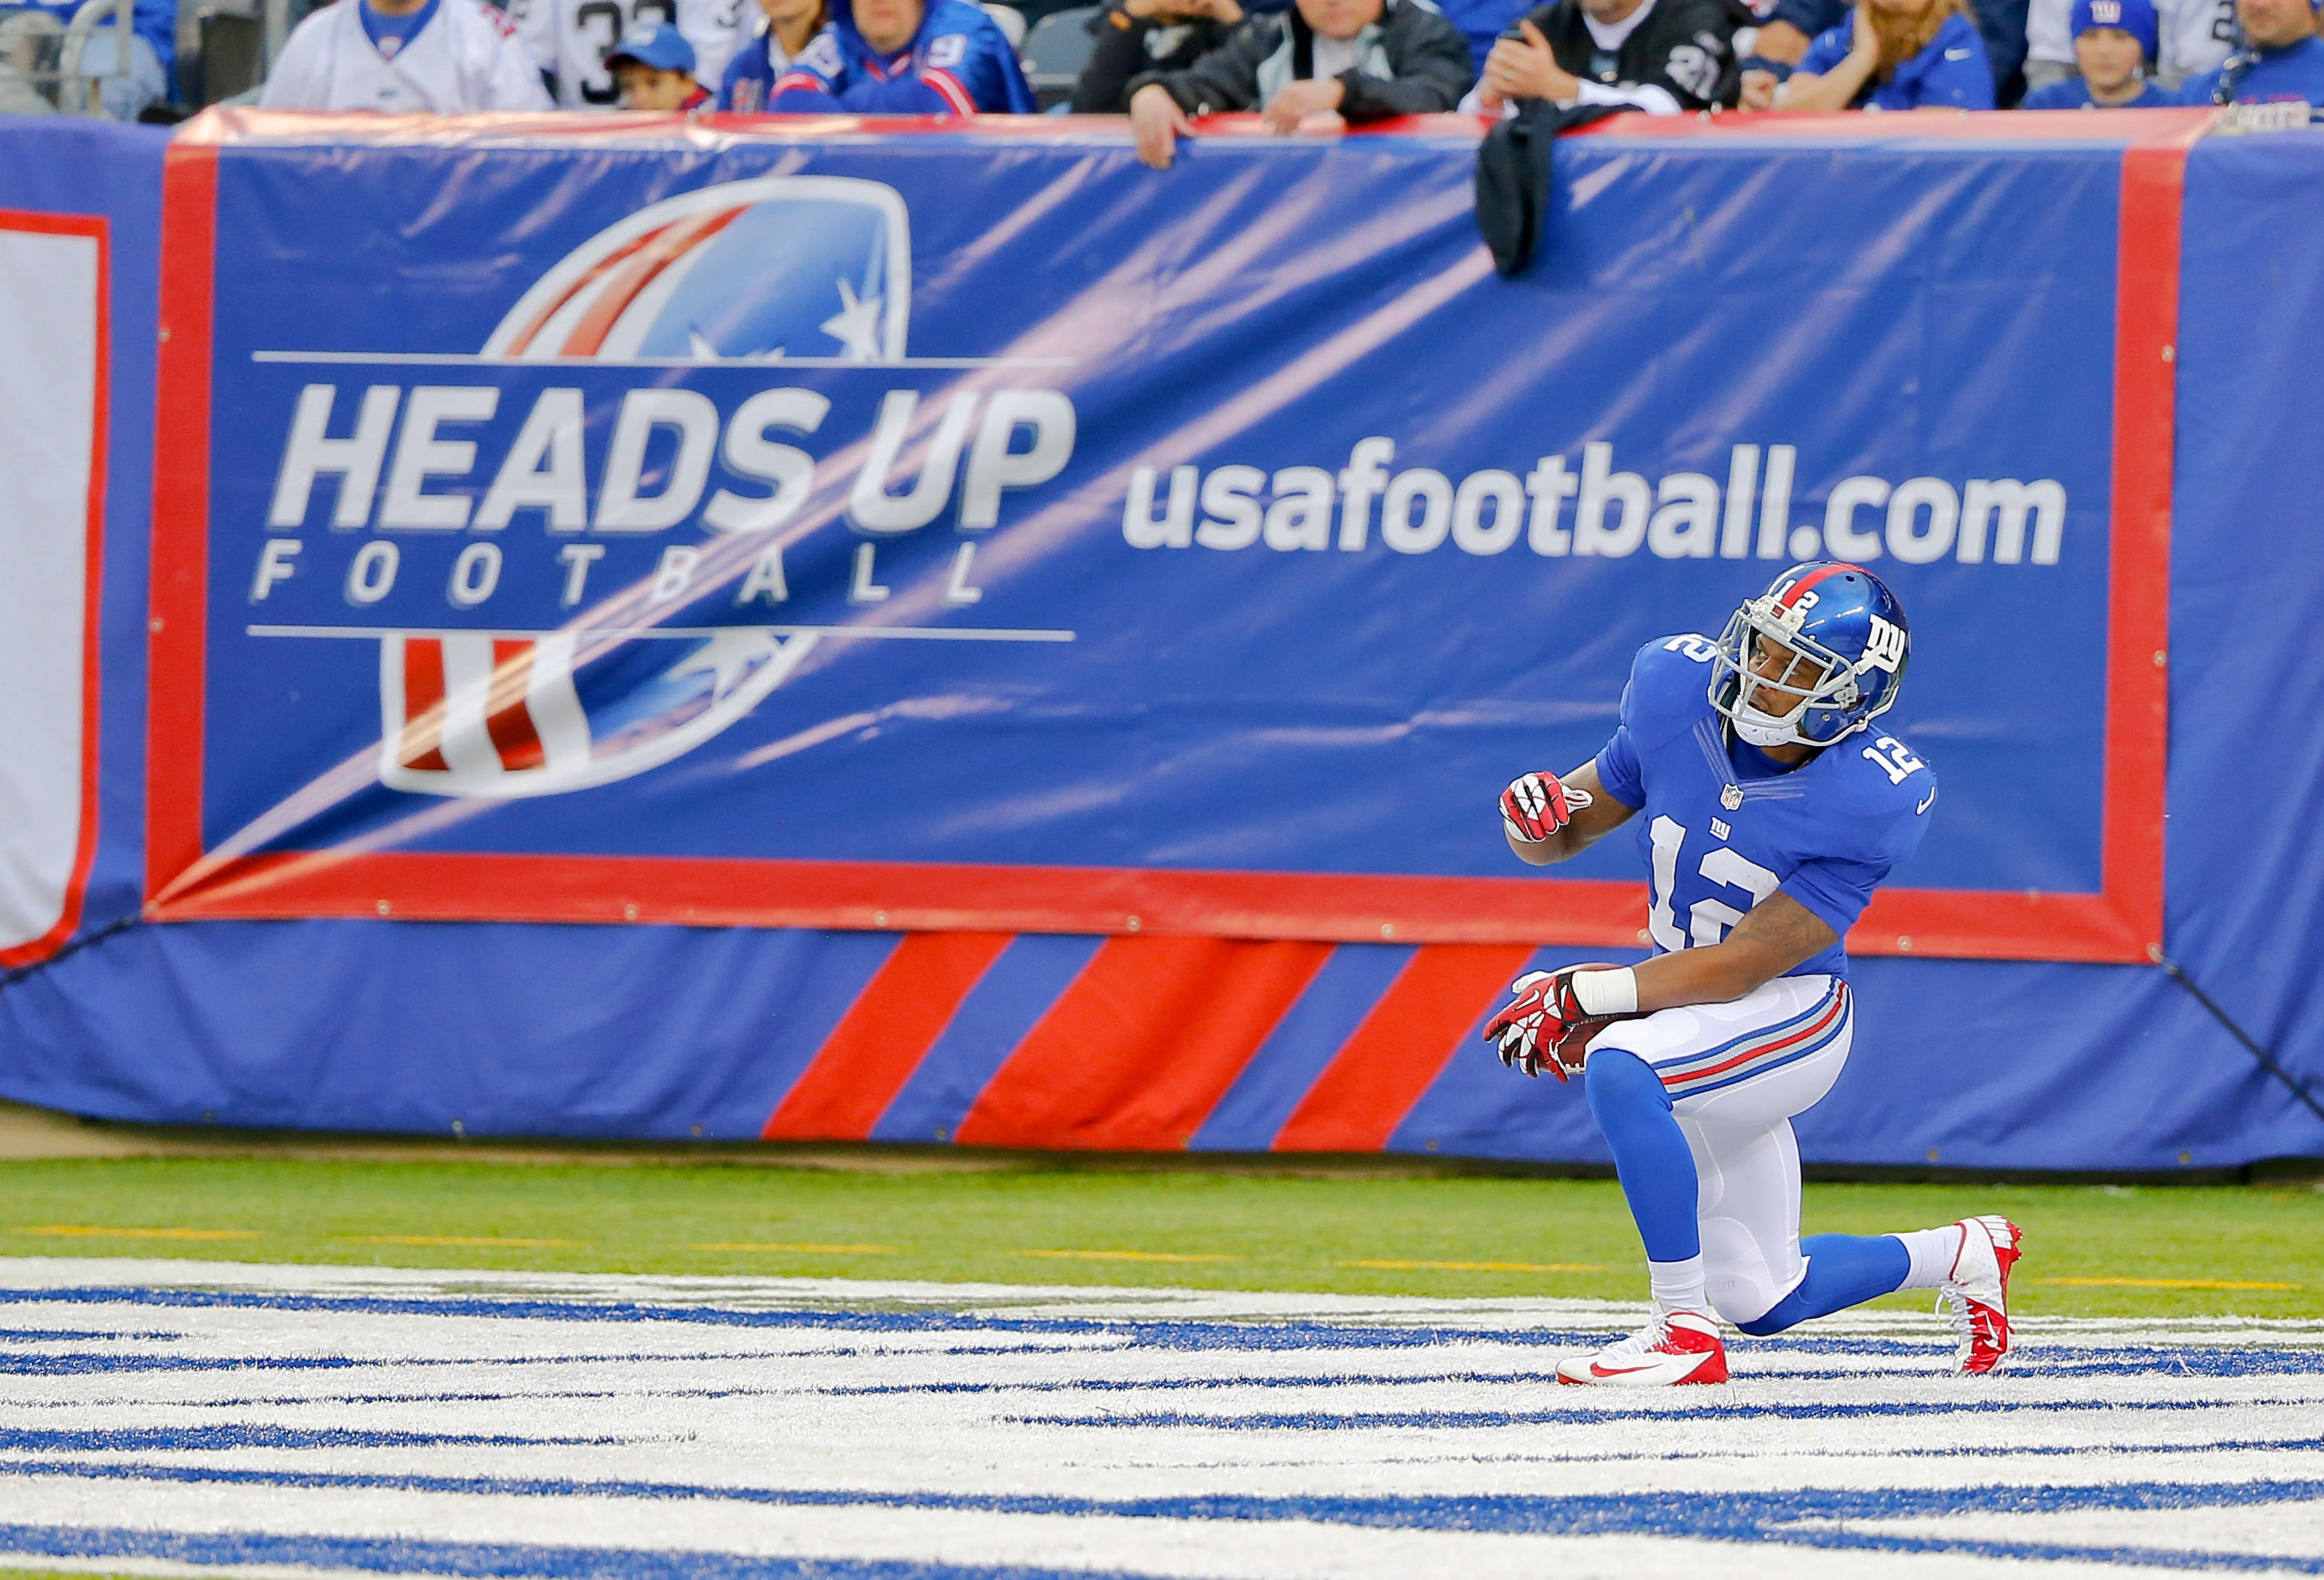 Maybe the Giants should do this all the time on kickoffs